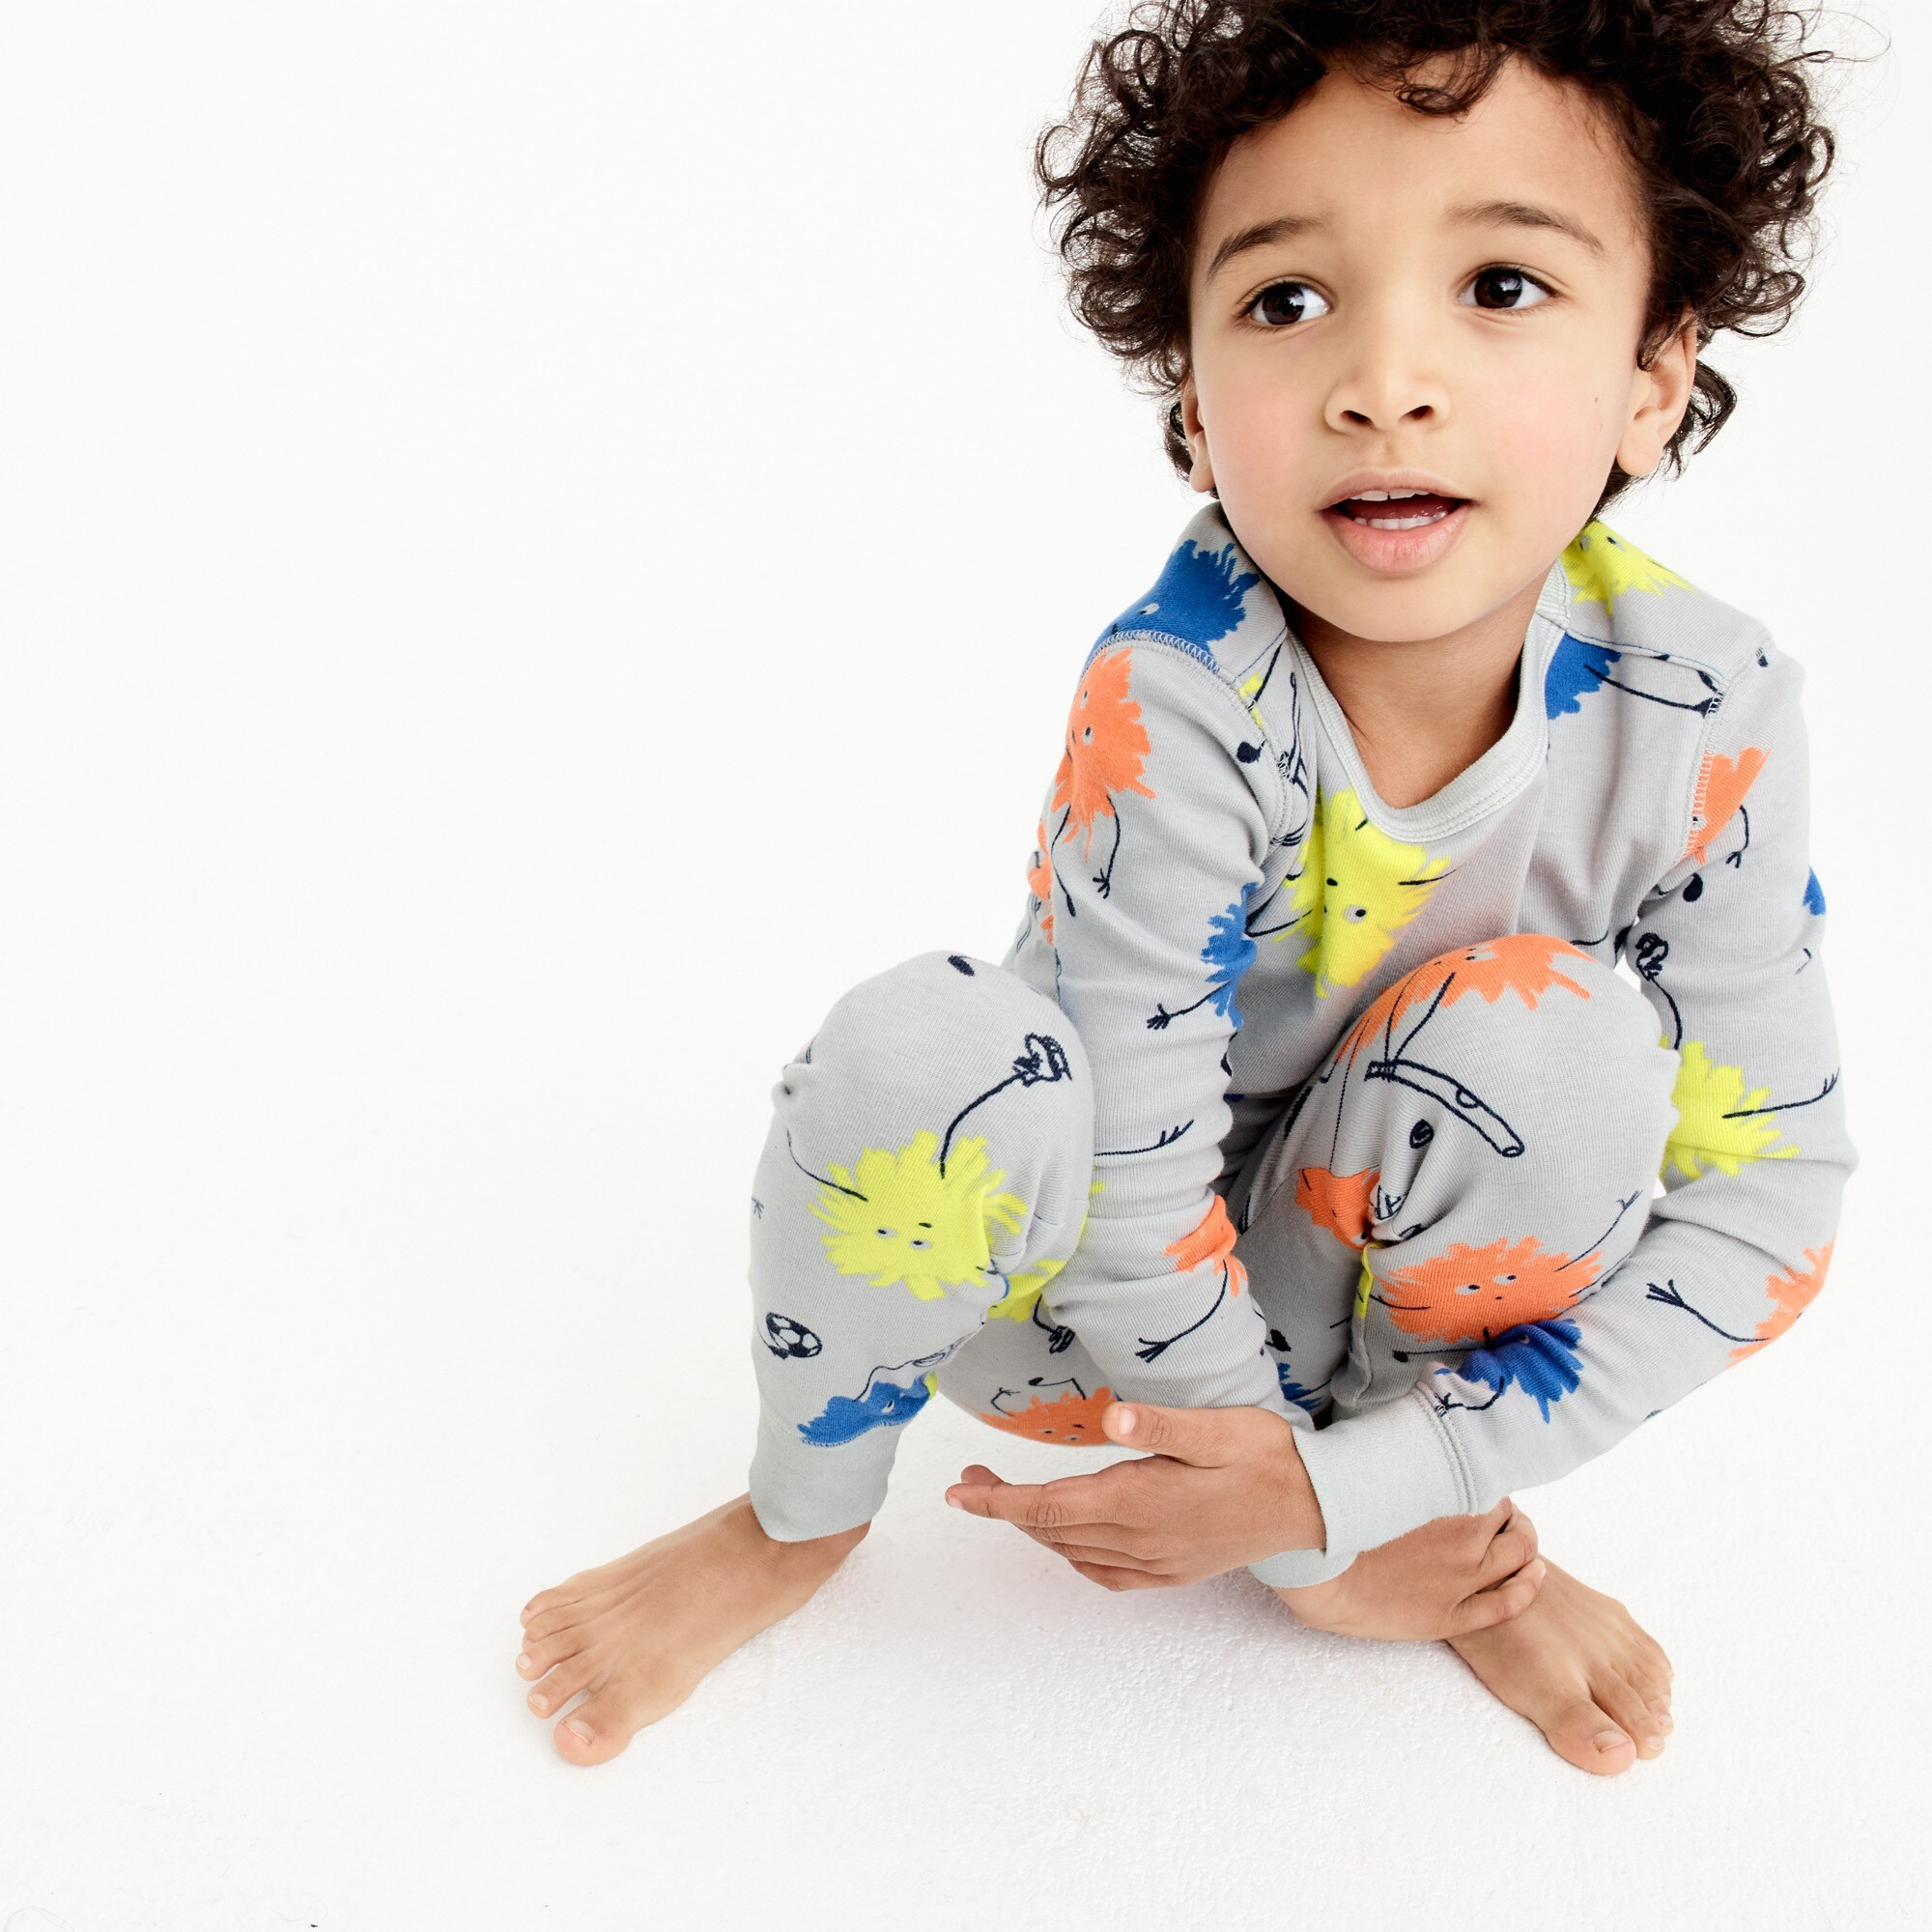 Kids' pajama set in Max the Monster